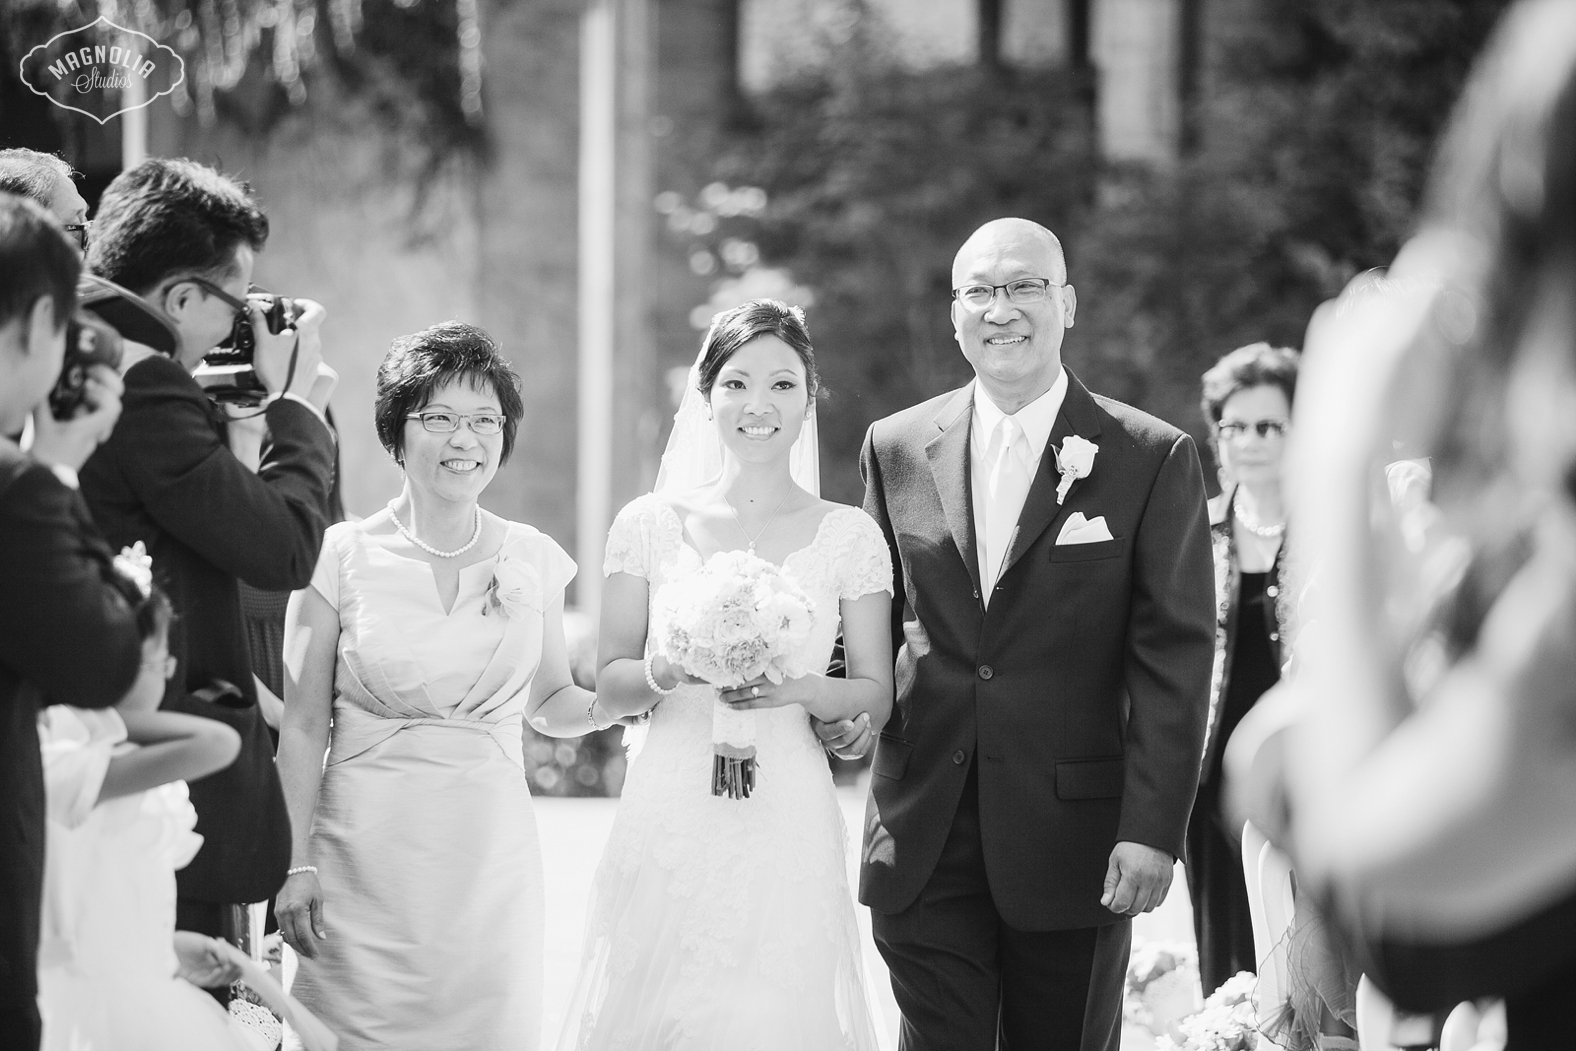 Magnolia_Studios_Wedding_0550